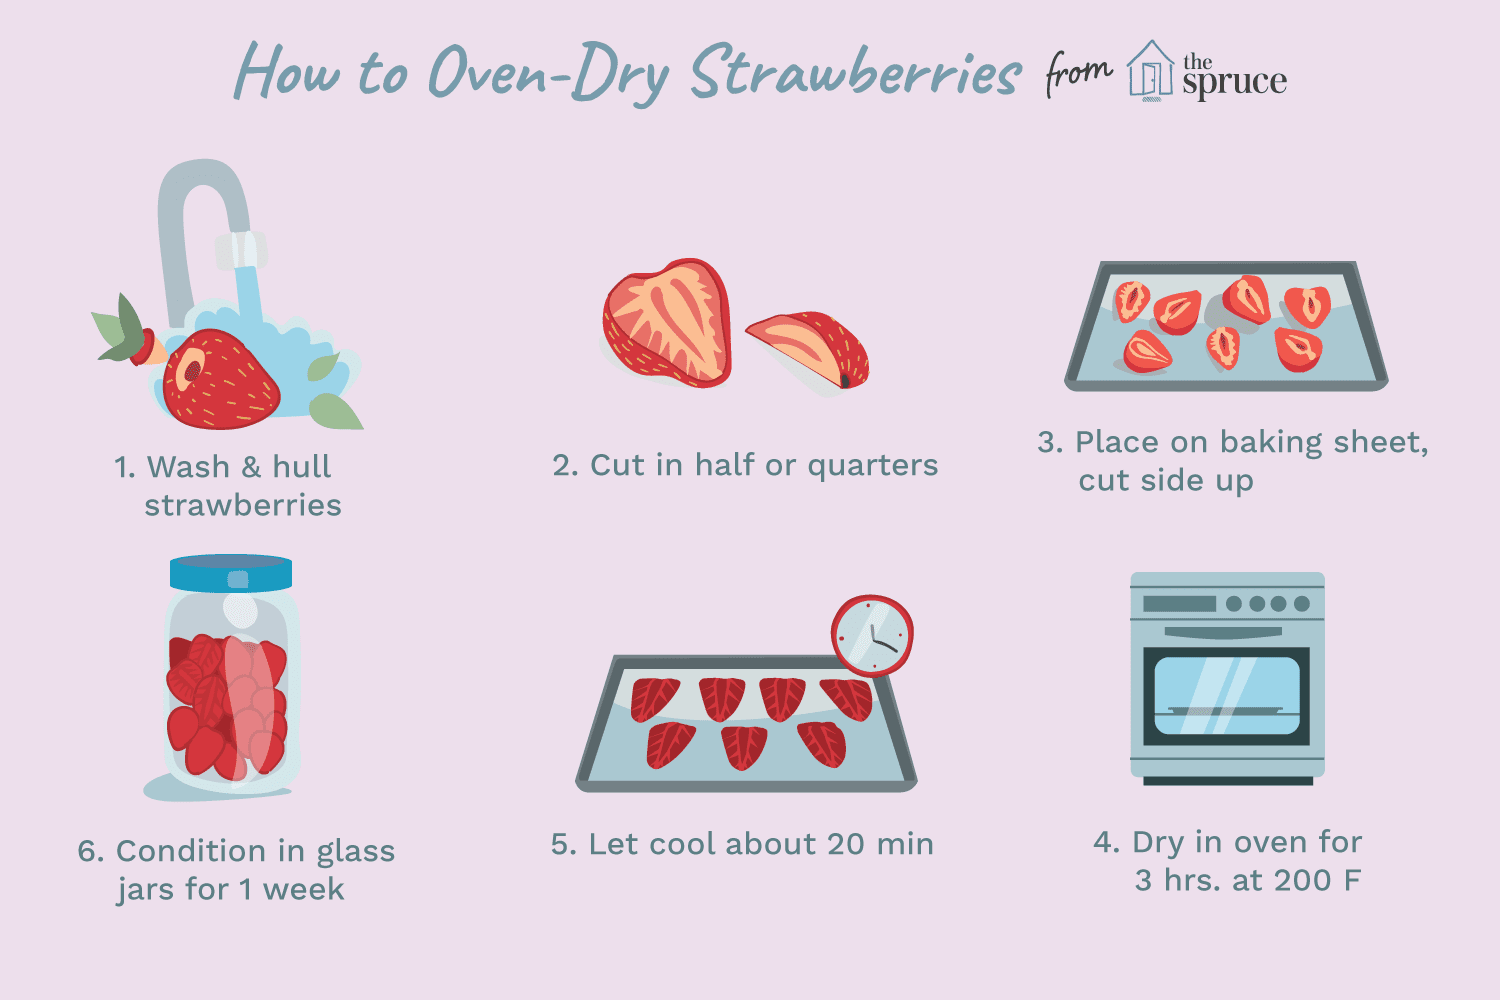 How to oven-dry strawberries illustration